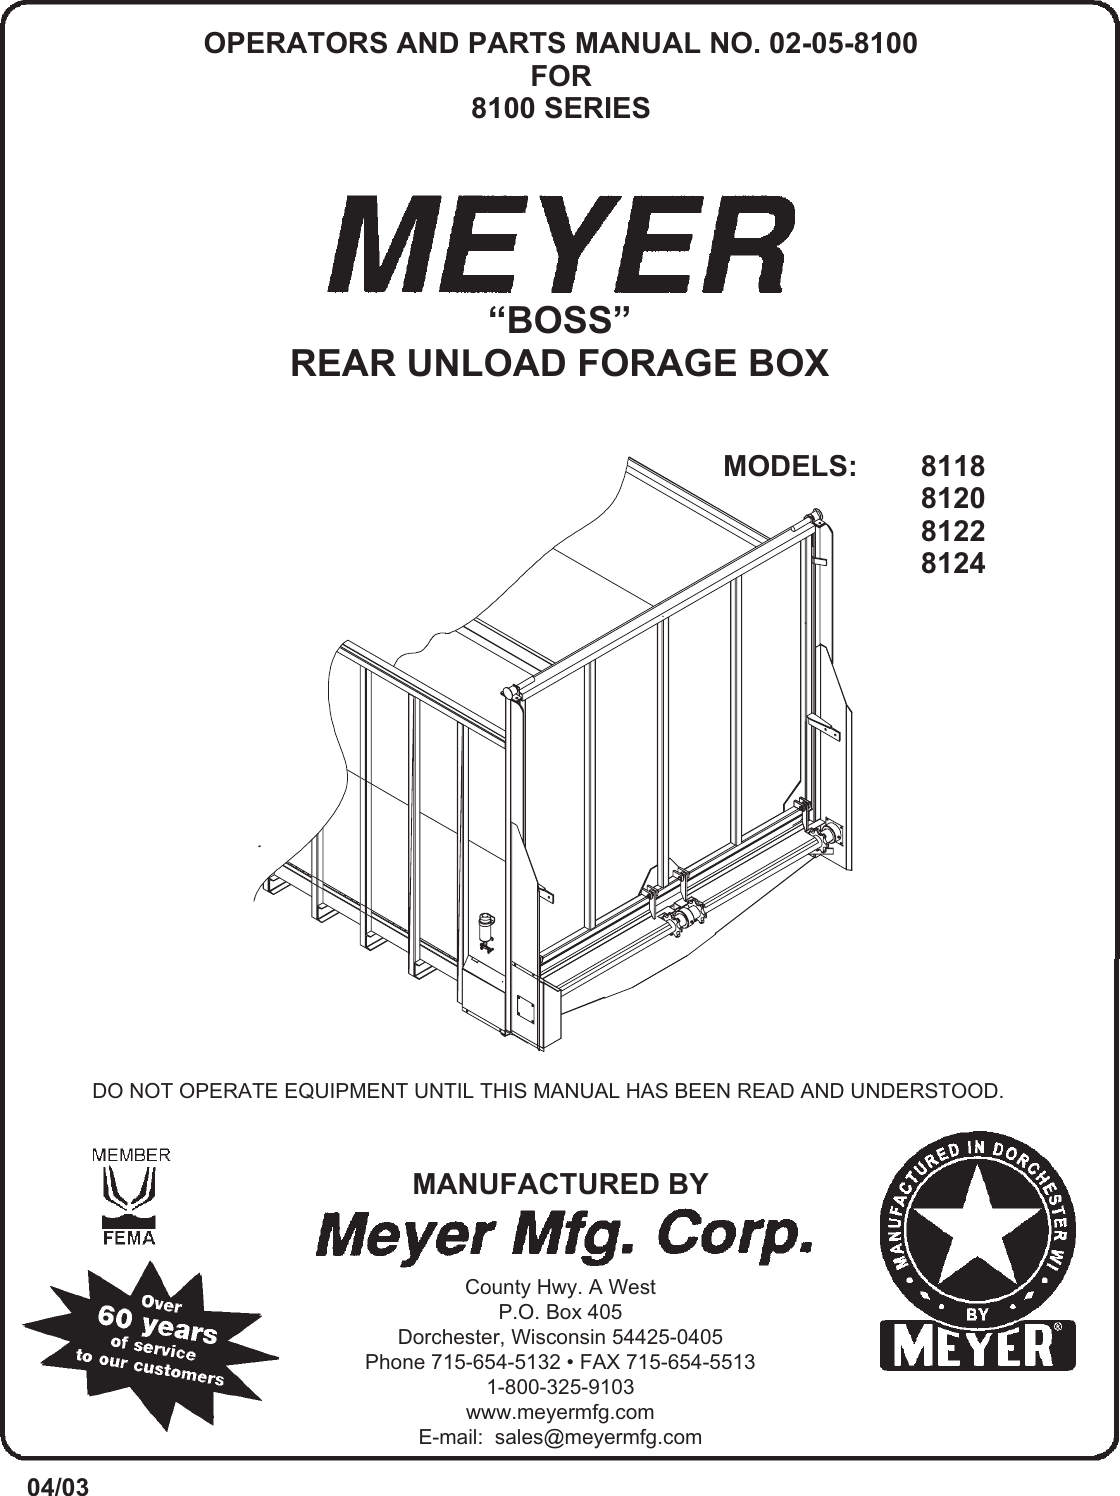 Meyer Cable Box 8100 Series Boss Rear Unload Forage Users